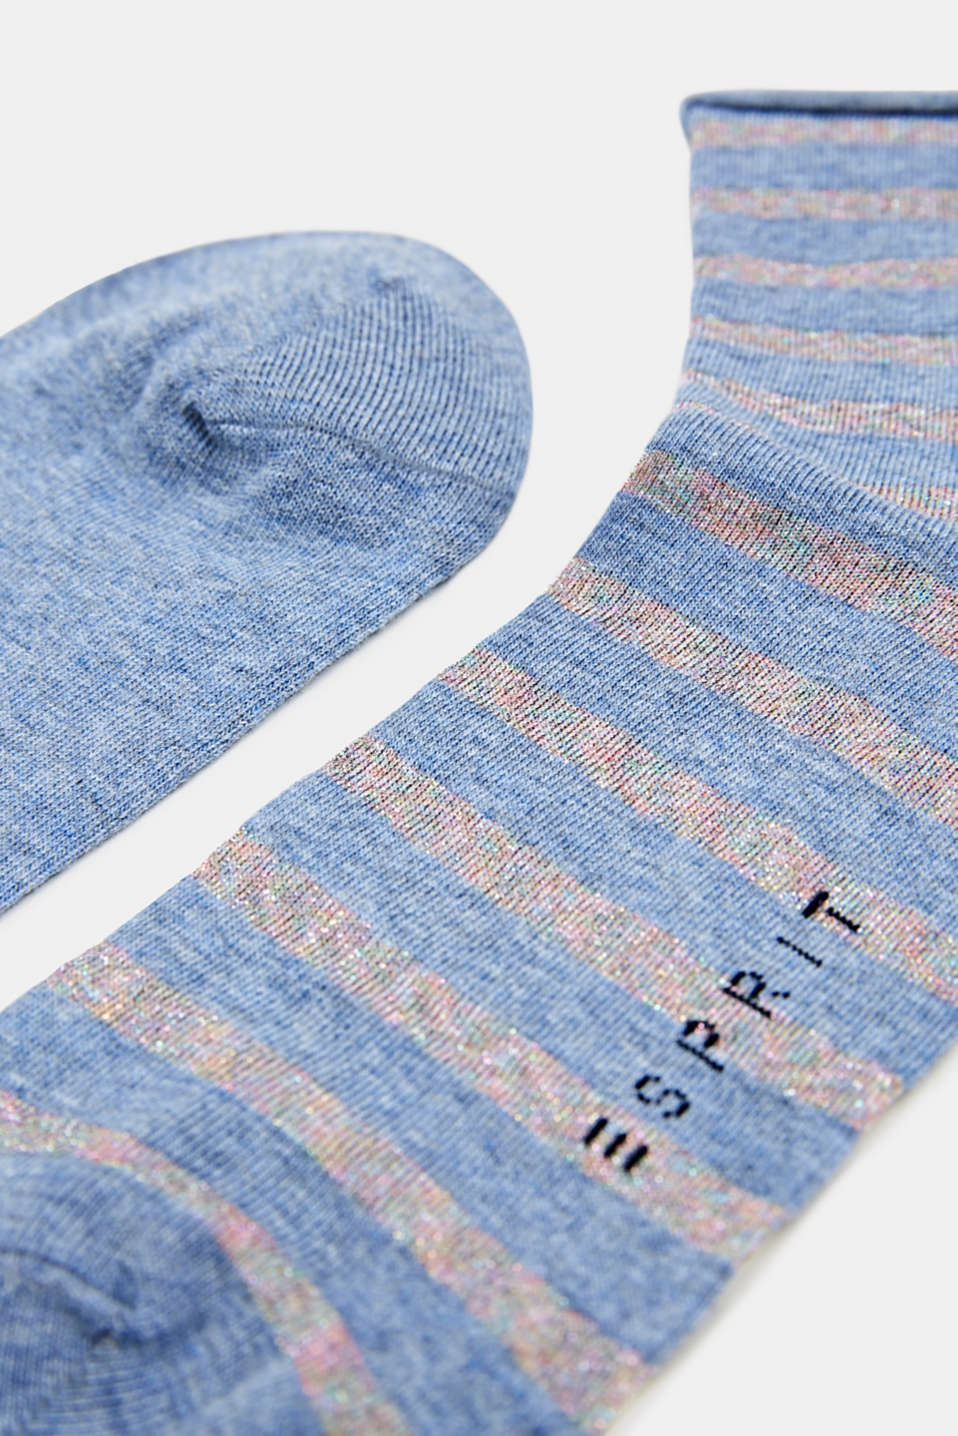 Double pack: plain and striped socks, BLAU MEL., detail image number 1